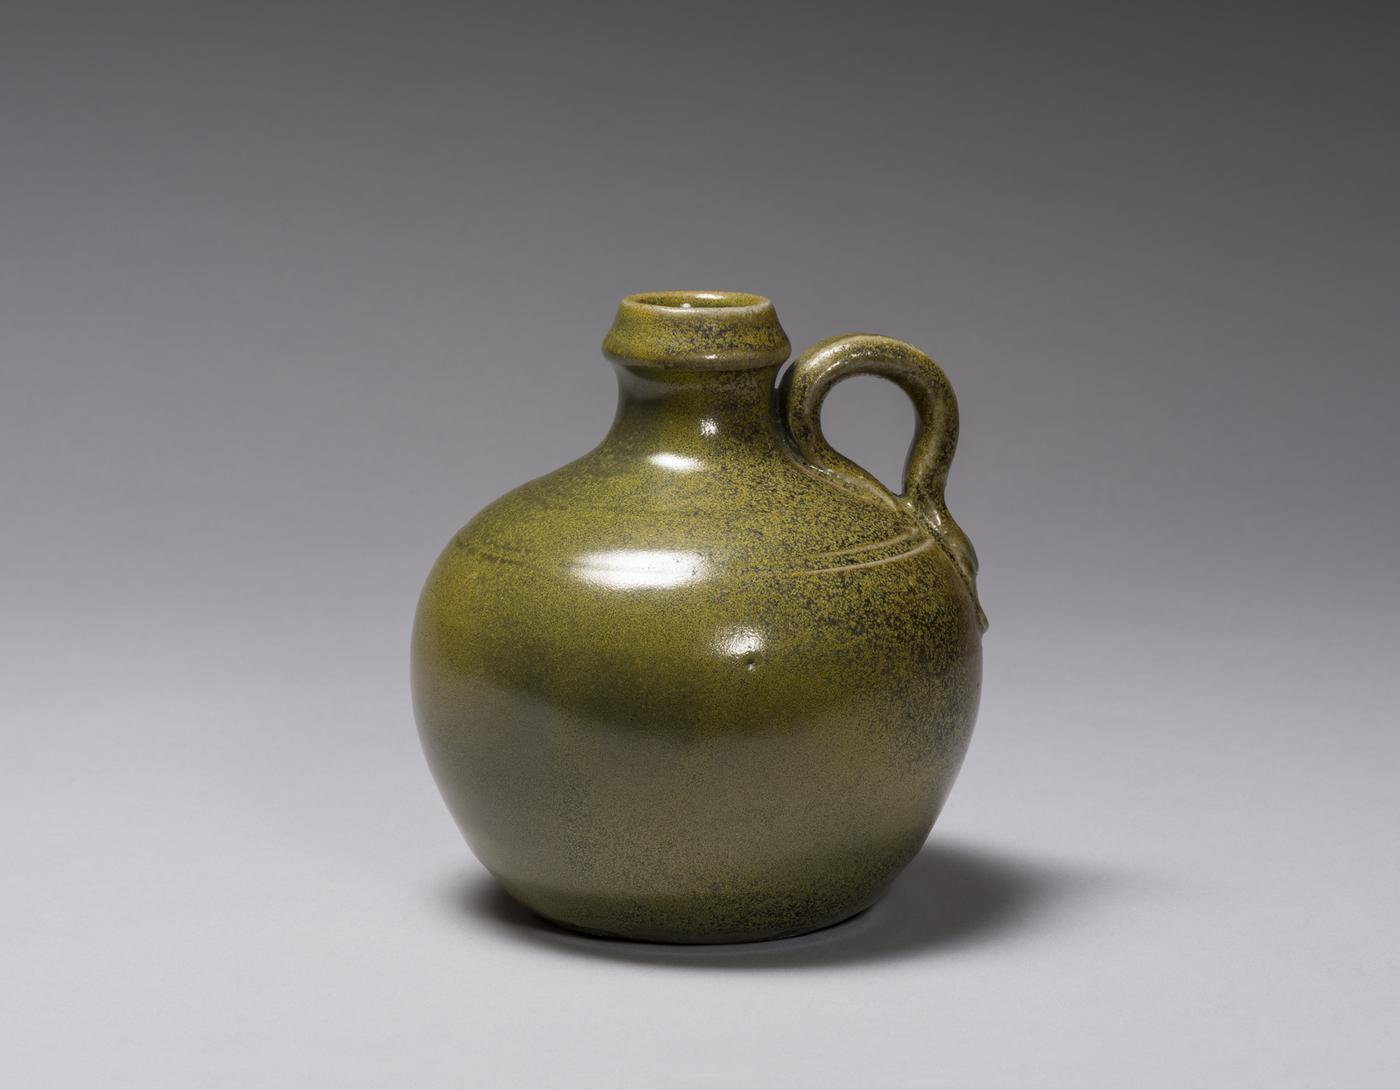 A short glossy greenish jug with a small round handle and a cork in the opening